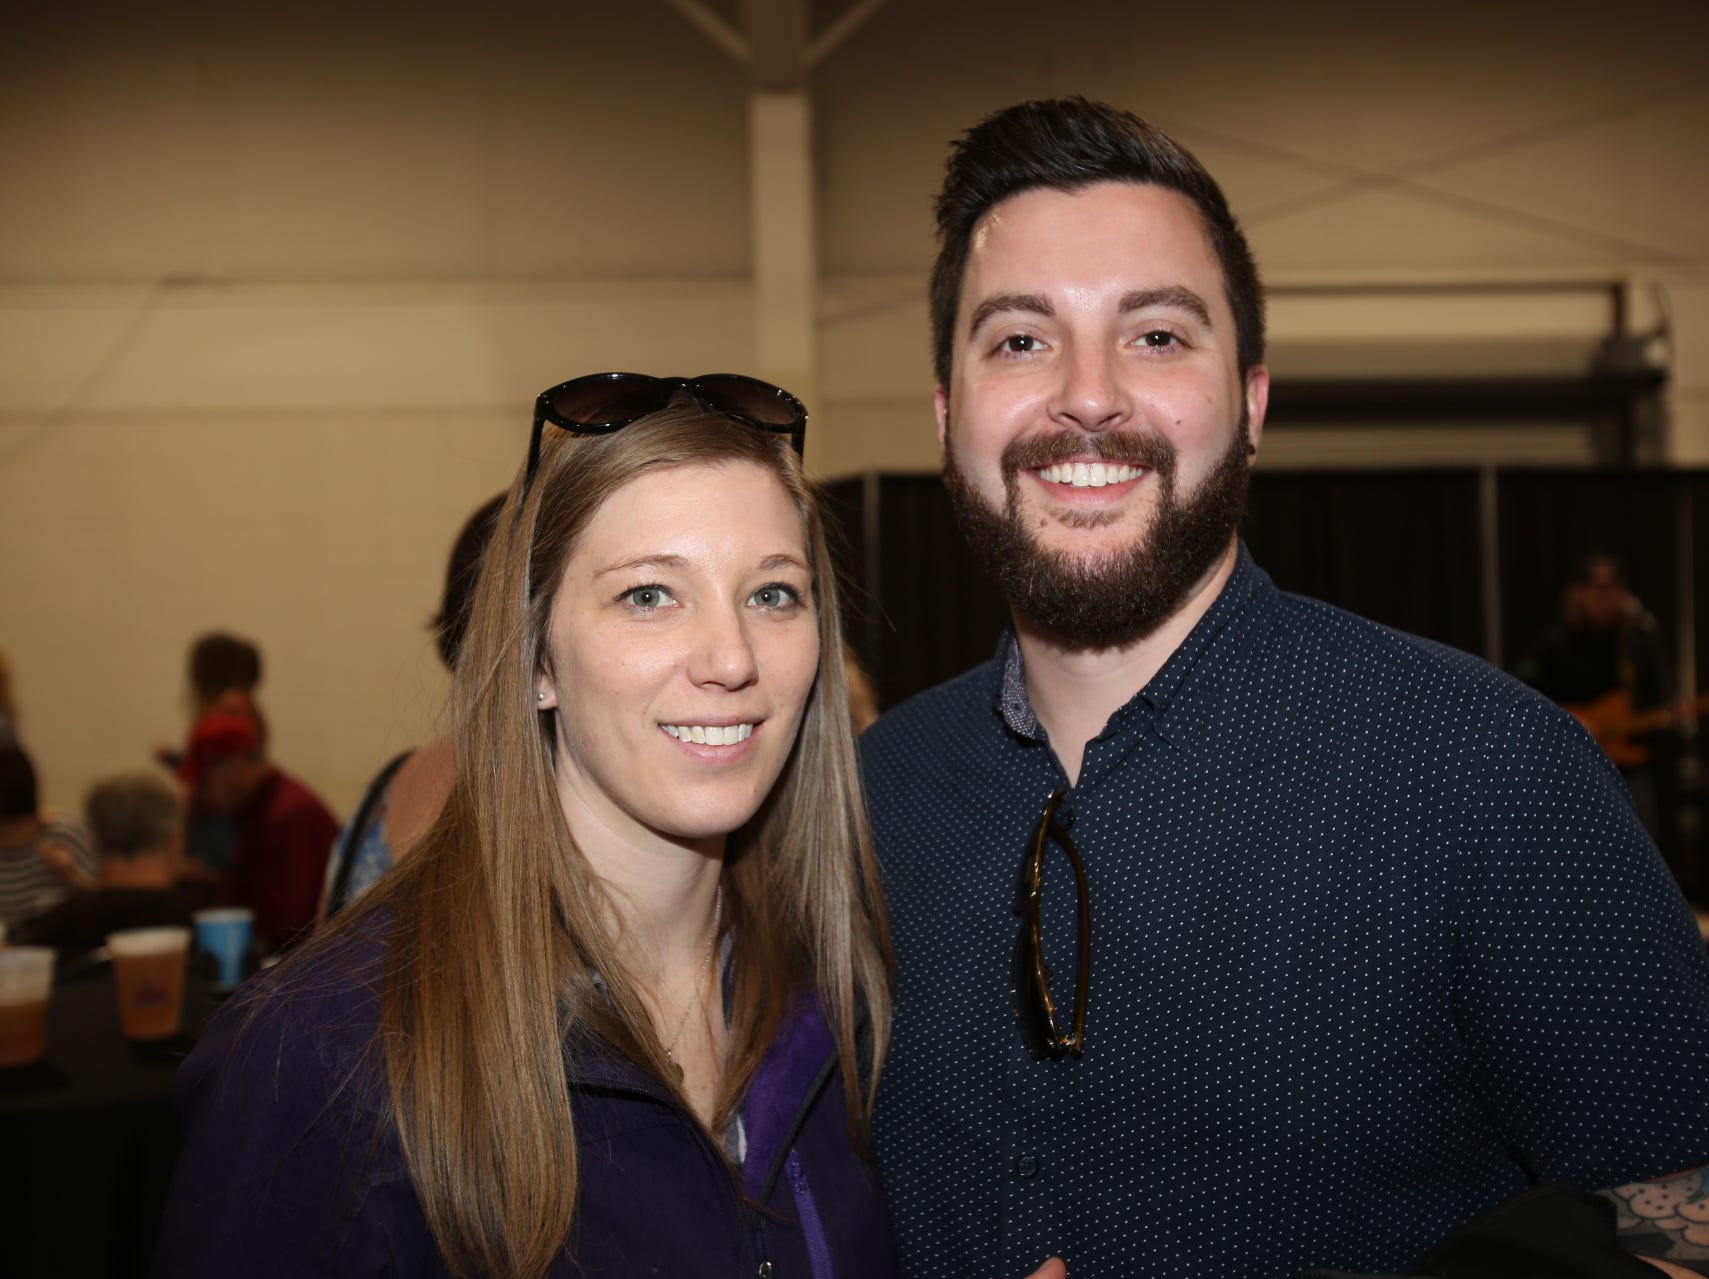 Lisa Cillessen and Dustin Smith